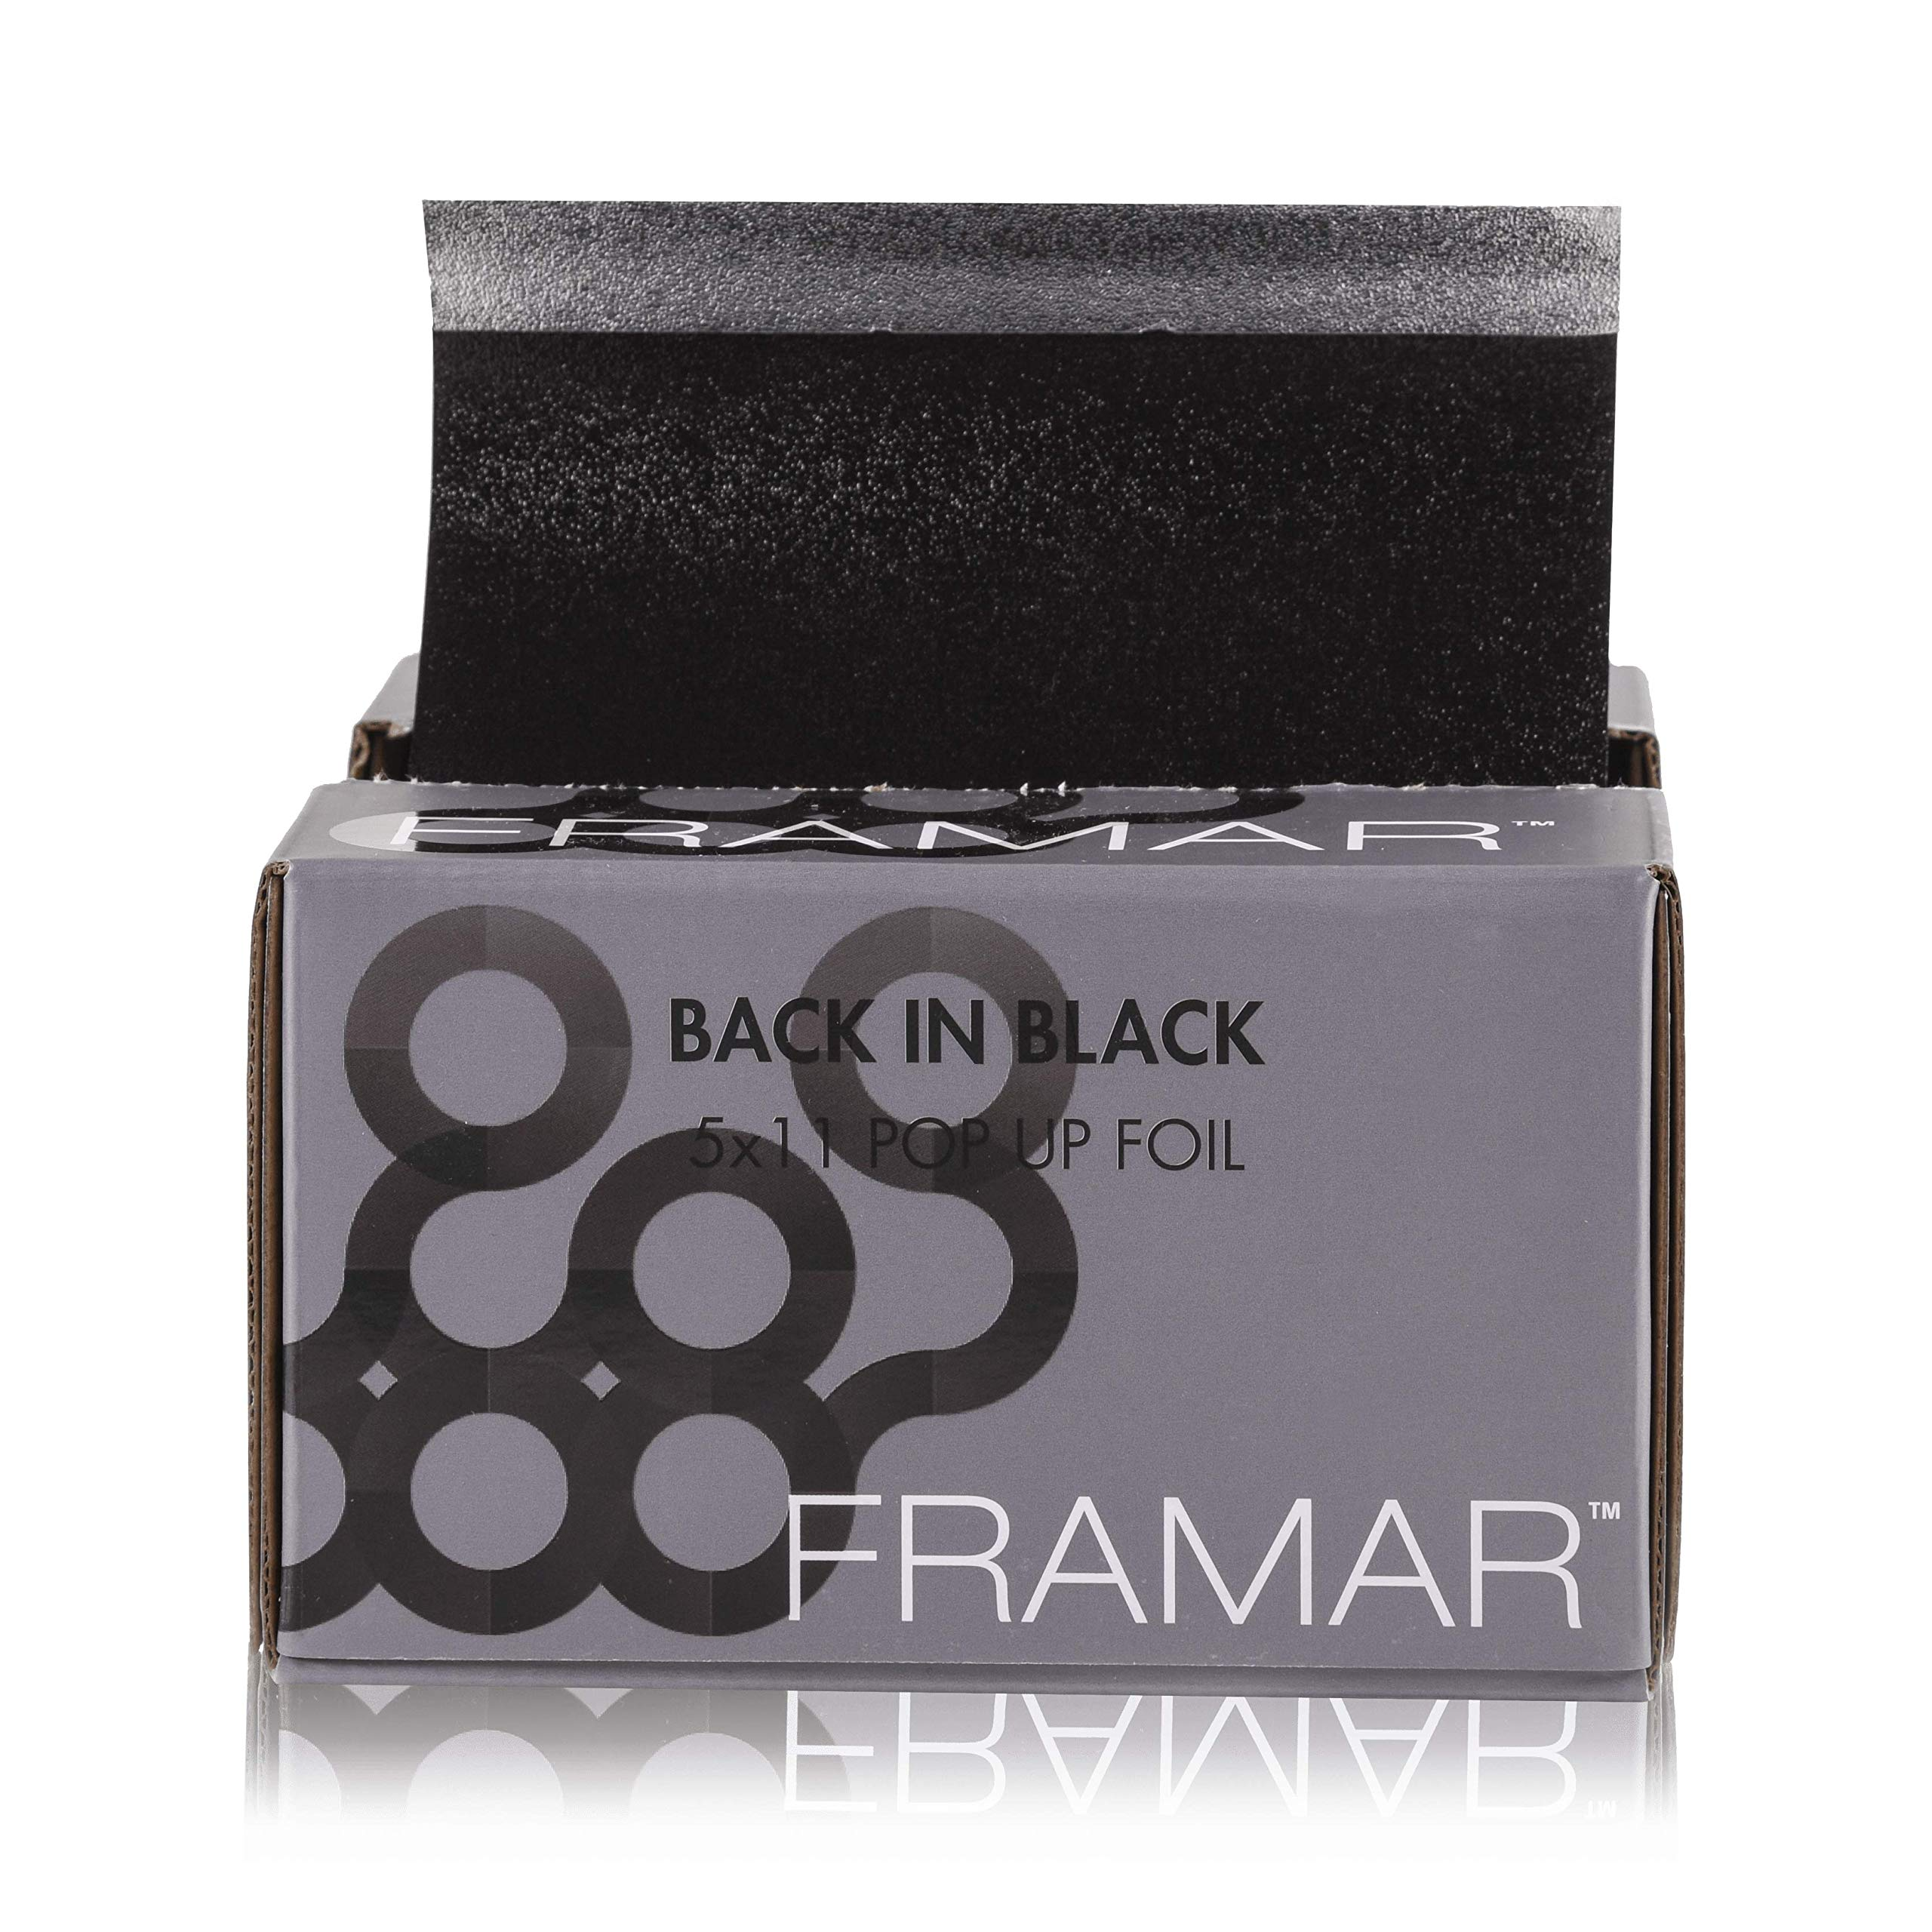 Framar Back In Black Pop Up Hair Foil, Aluminum Foil Sheets, Hair Foils For Highlighting - 500 Foil Sheets by Framar